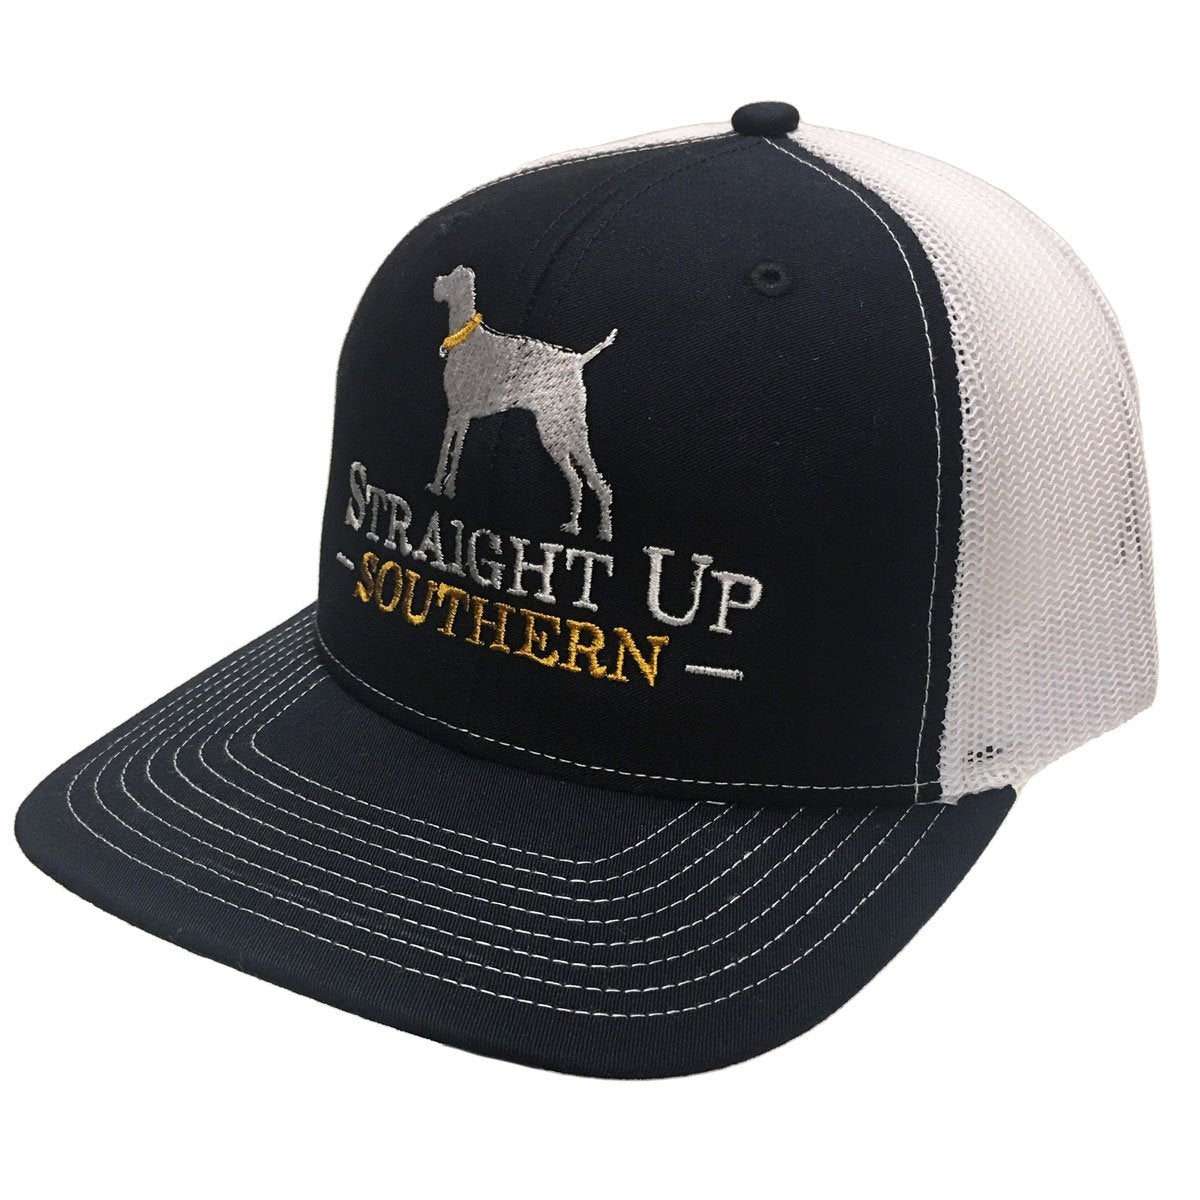 Dog Navy White Richardson Mesh Hat